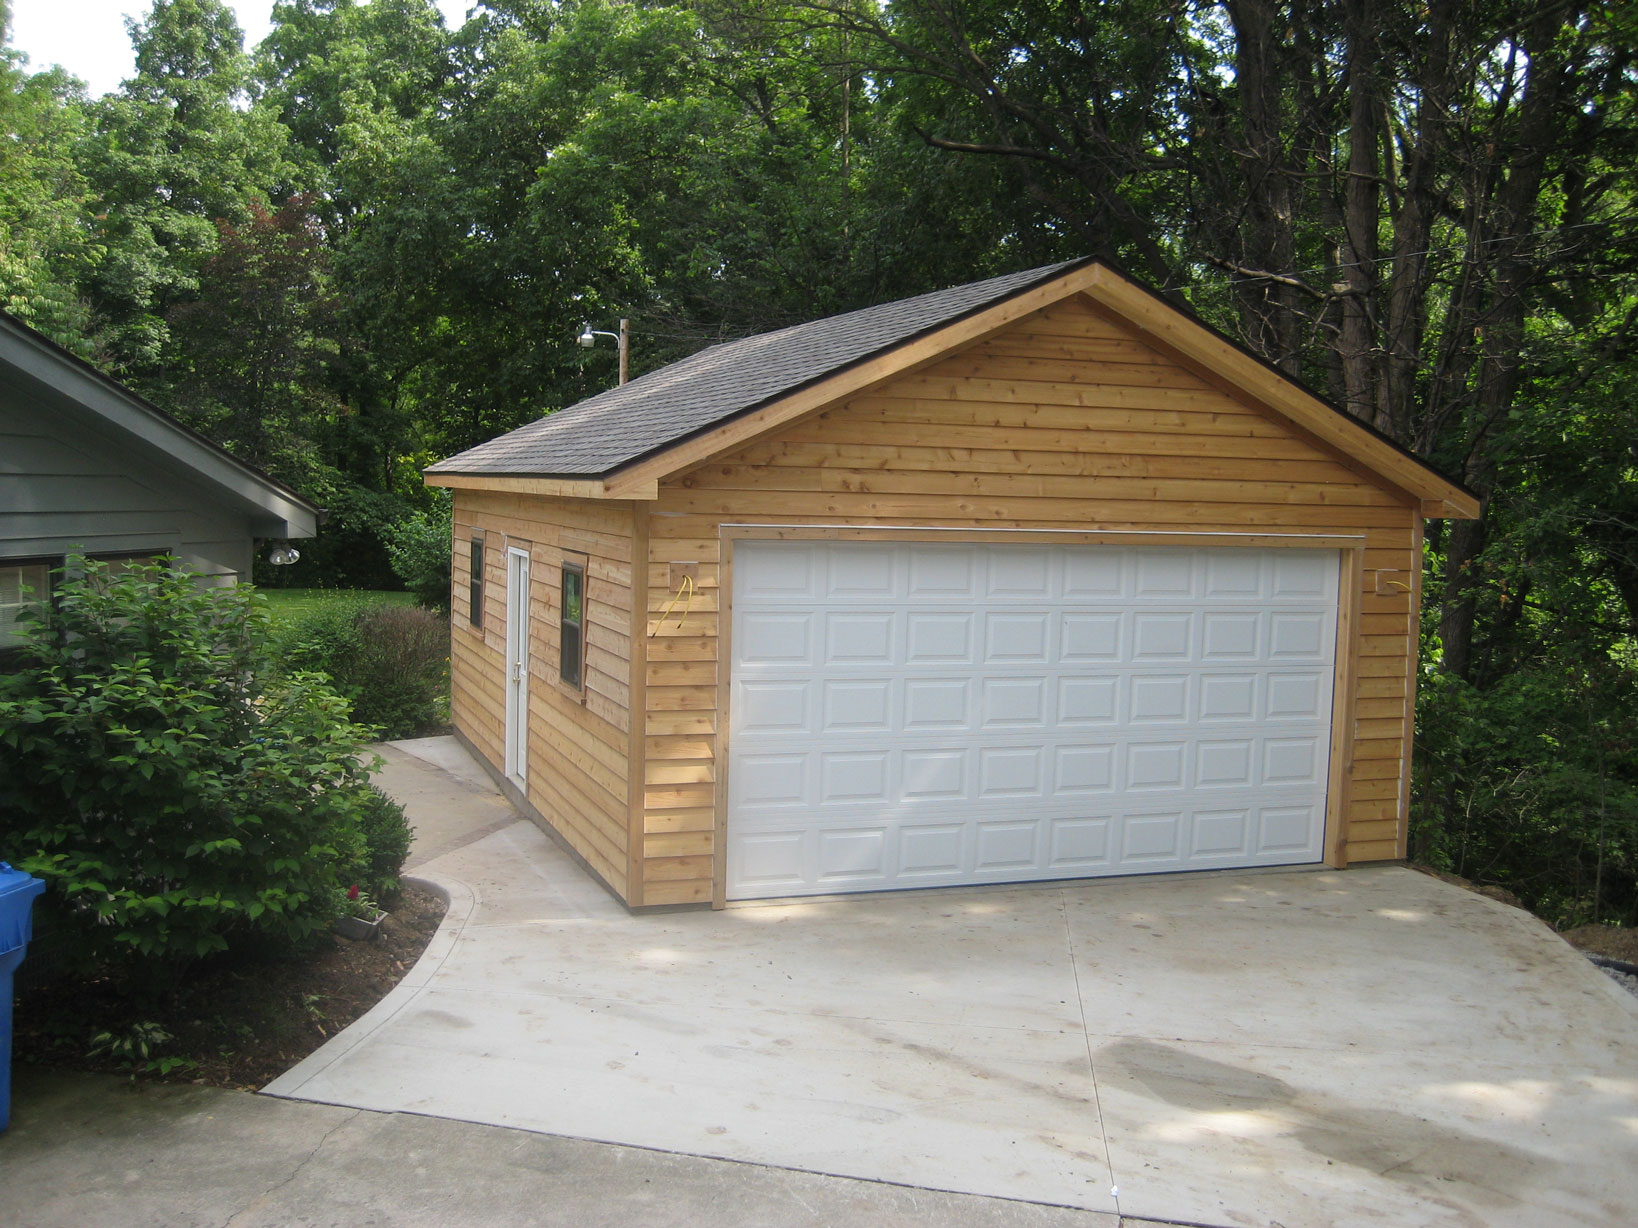 pole pa truss menards constructing garage metal free trusses barns kits cost garages barn or for plans ideas sale costs your